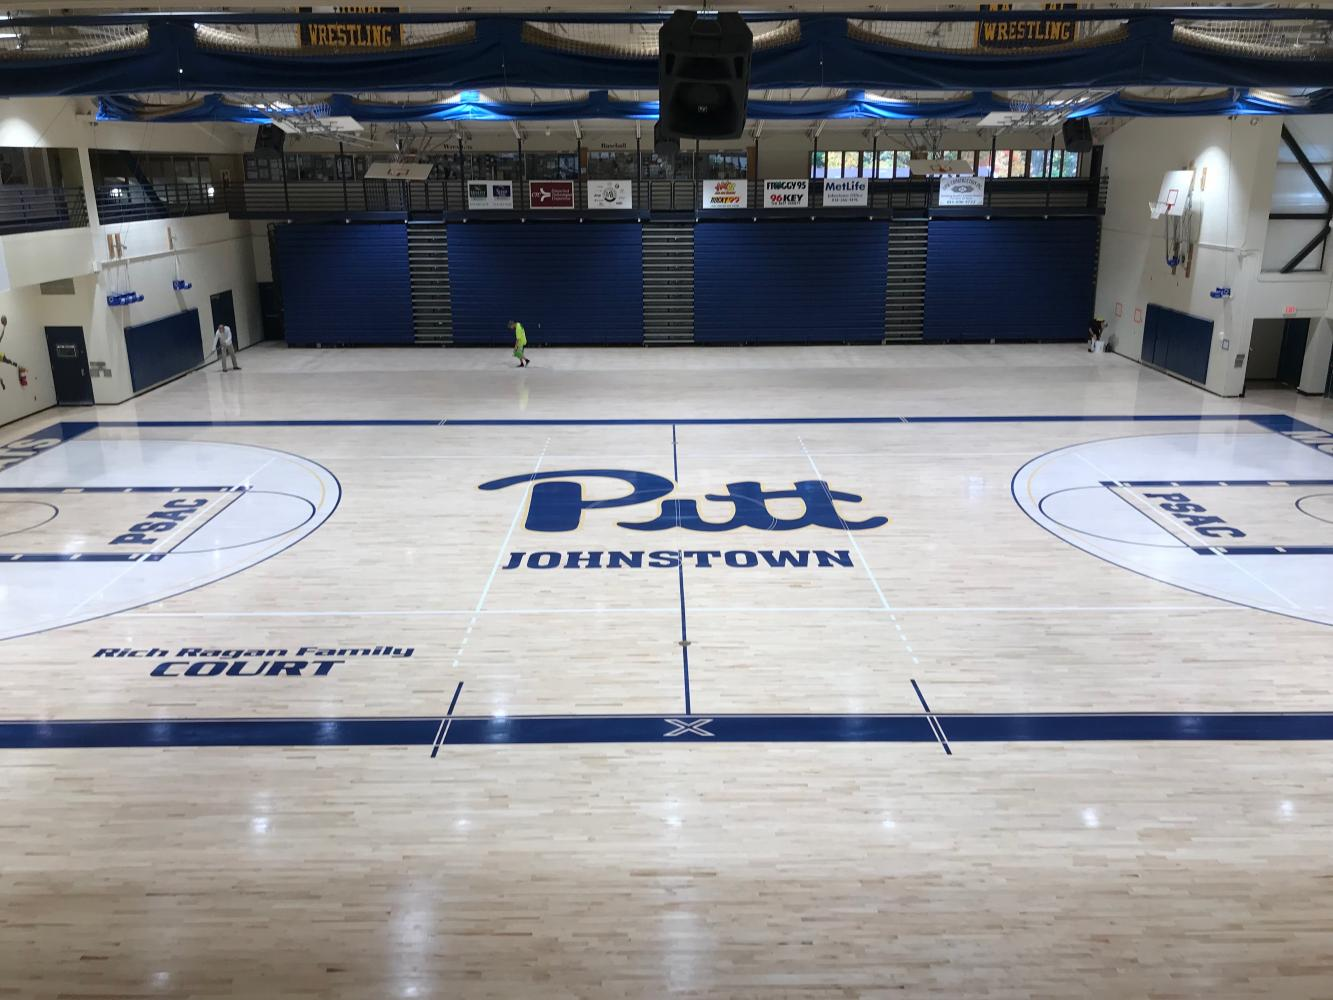 The Pitt-Johnstown Sports Center received a $211,500 renovation that placed hardwood over the old composite floor. The renovation was completed by  S&S Flooring in Ambridge, Beaver County. The Pitt-Johnstown men's and women's basketball team had their first practice on the new floor Sunday.